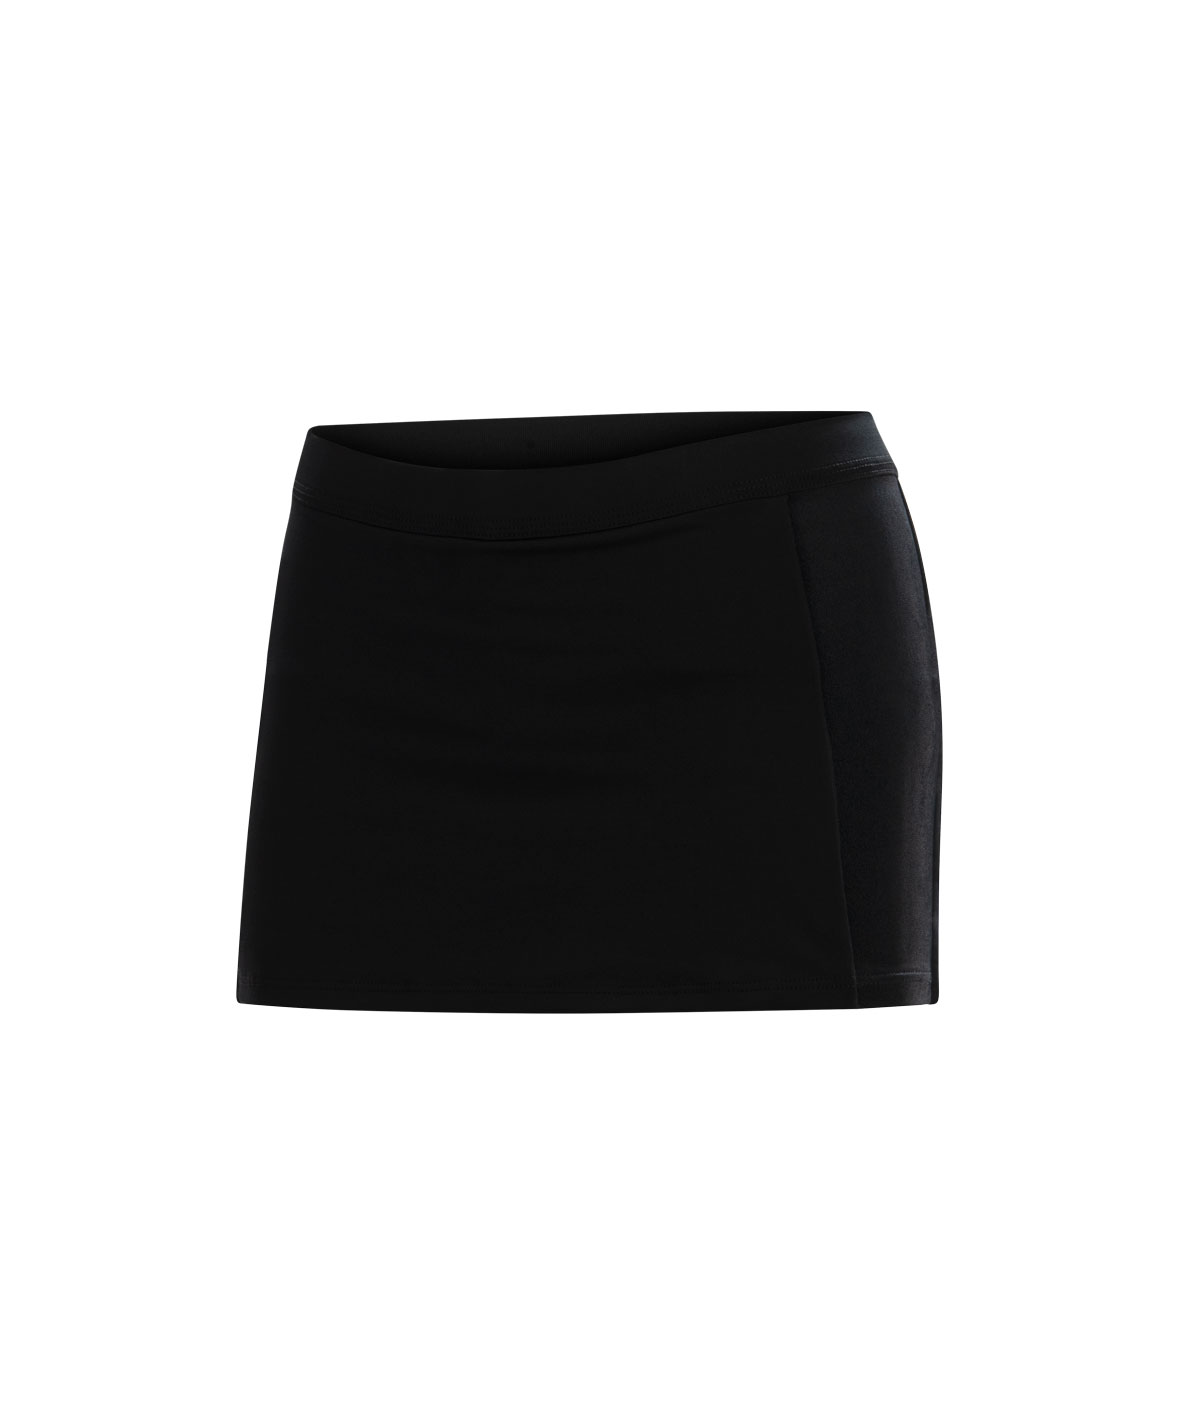 GK All Star Black DryTech Skirt